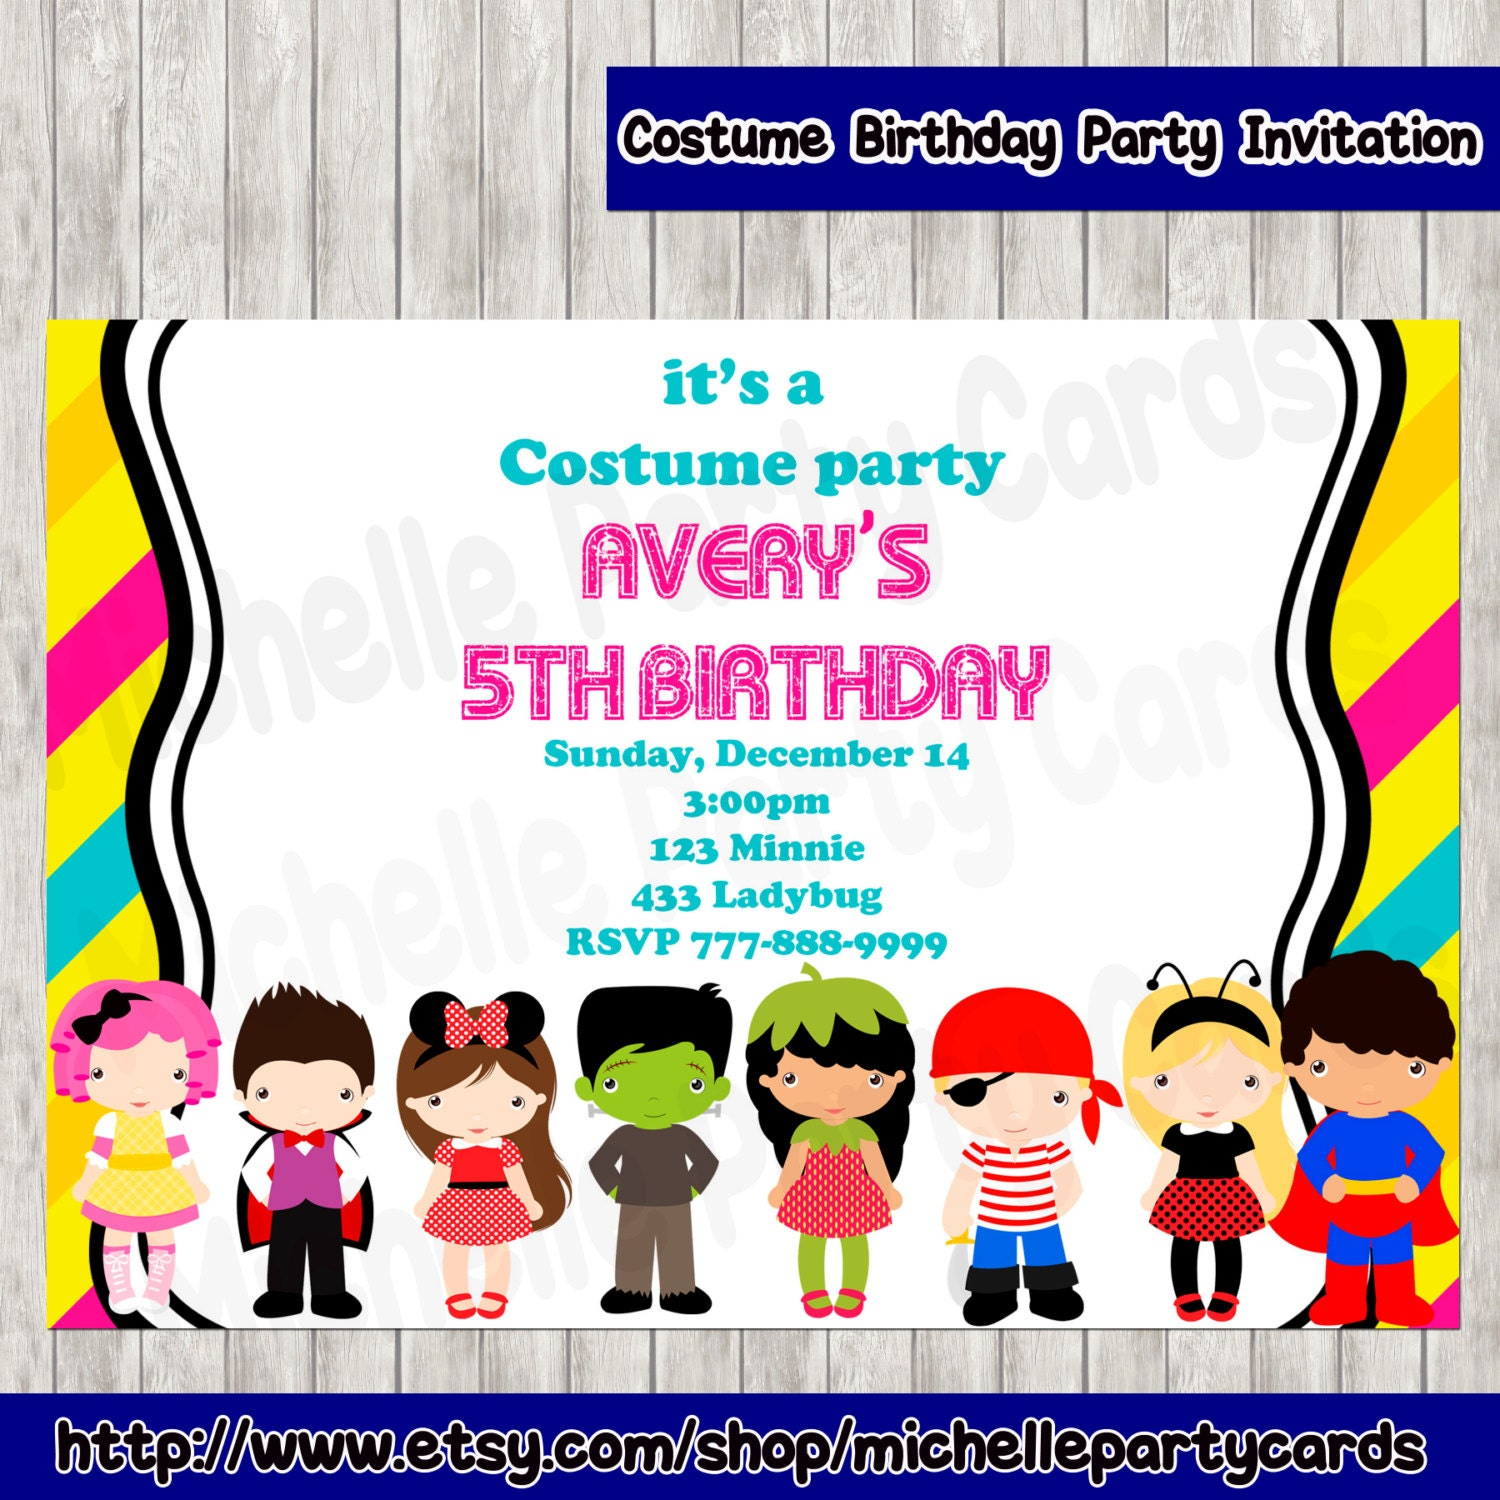 Costume Birthday Party Invitation By Michellepartycards On